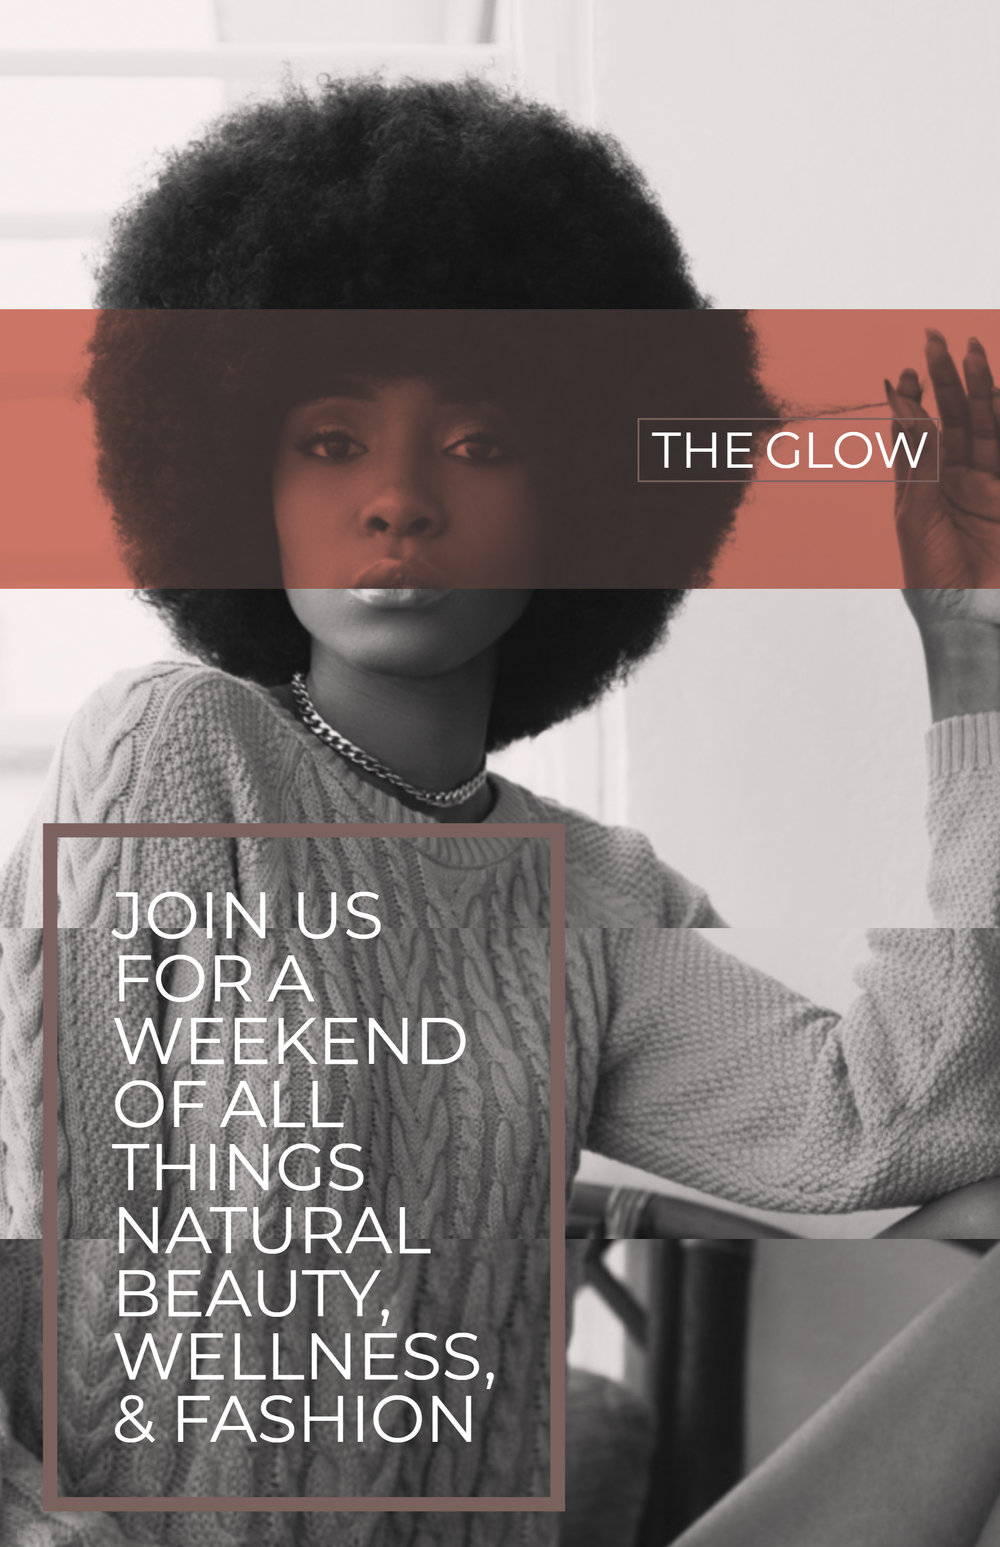 Our first event of year!!! This Saturday, join us for a 2-day brunch of melanin, music, and mimosas!  We'll have a panelists of #curlfriends and gurus in wellness, beauty, and fashion industries!   Link in the bio for ticket purchase!  #naturalhairevent #nyc #brooklyn #chicago #blackgirlmagic #naturalhair #brunch #eventswelove